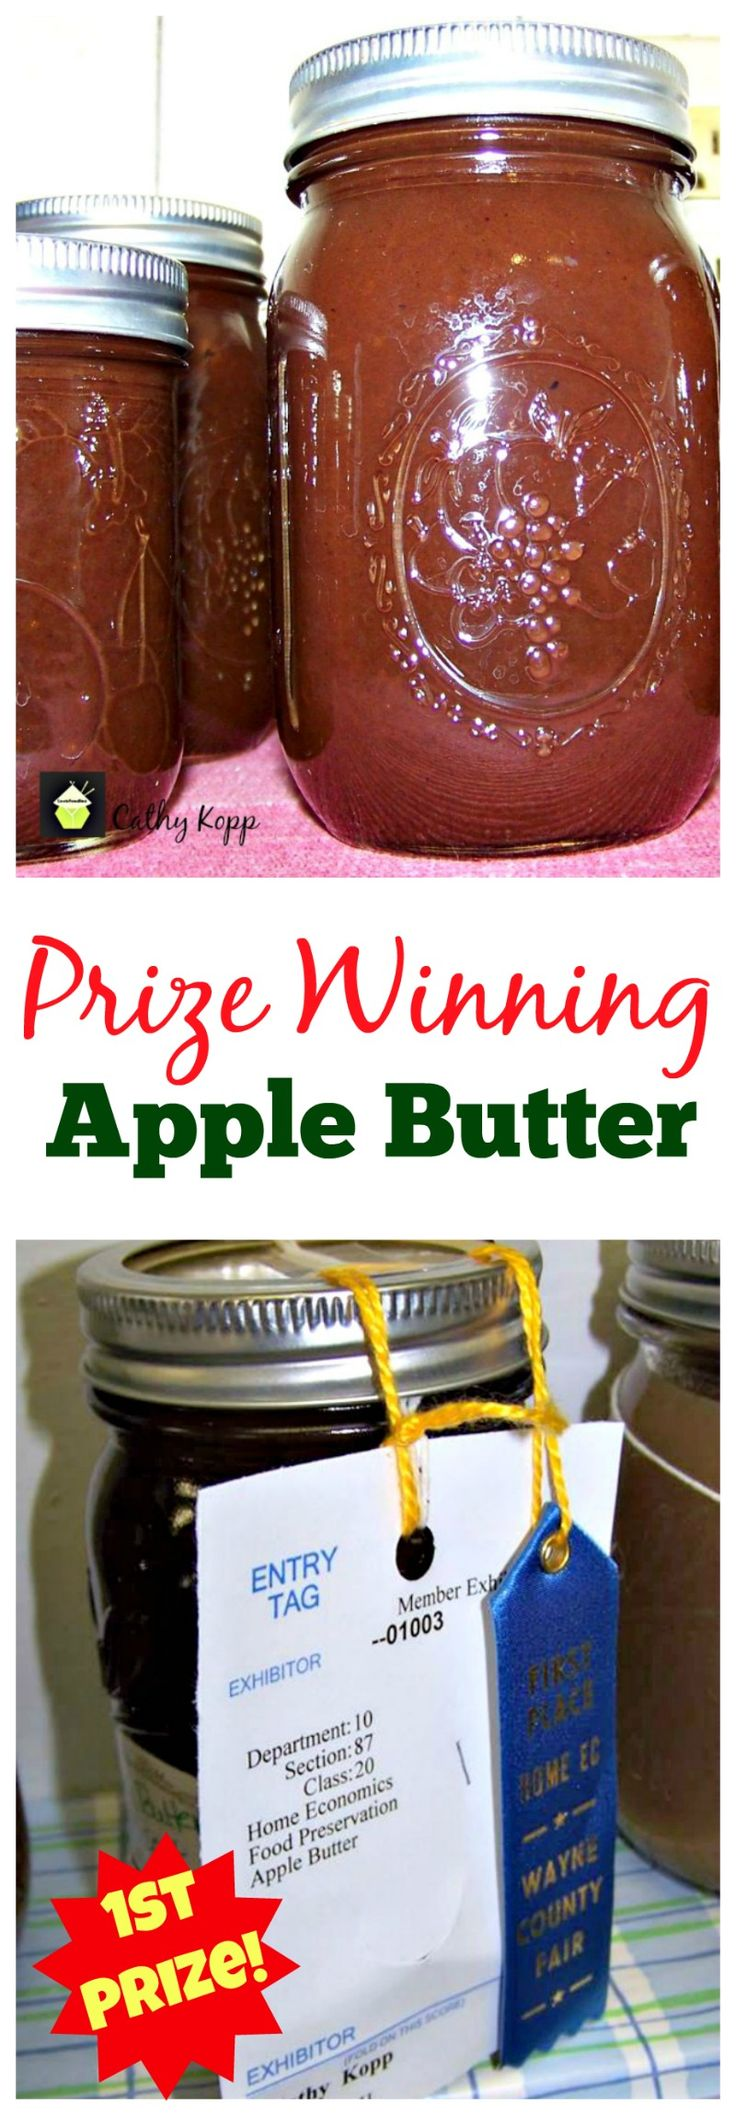 Prize Winning Apple Butter -Easy Crock Pot Recipe. Goes great with sweet or savory dishes. You choose! Nice for gifts too! | Lovefoodies.com